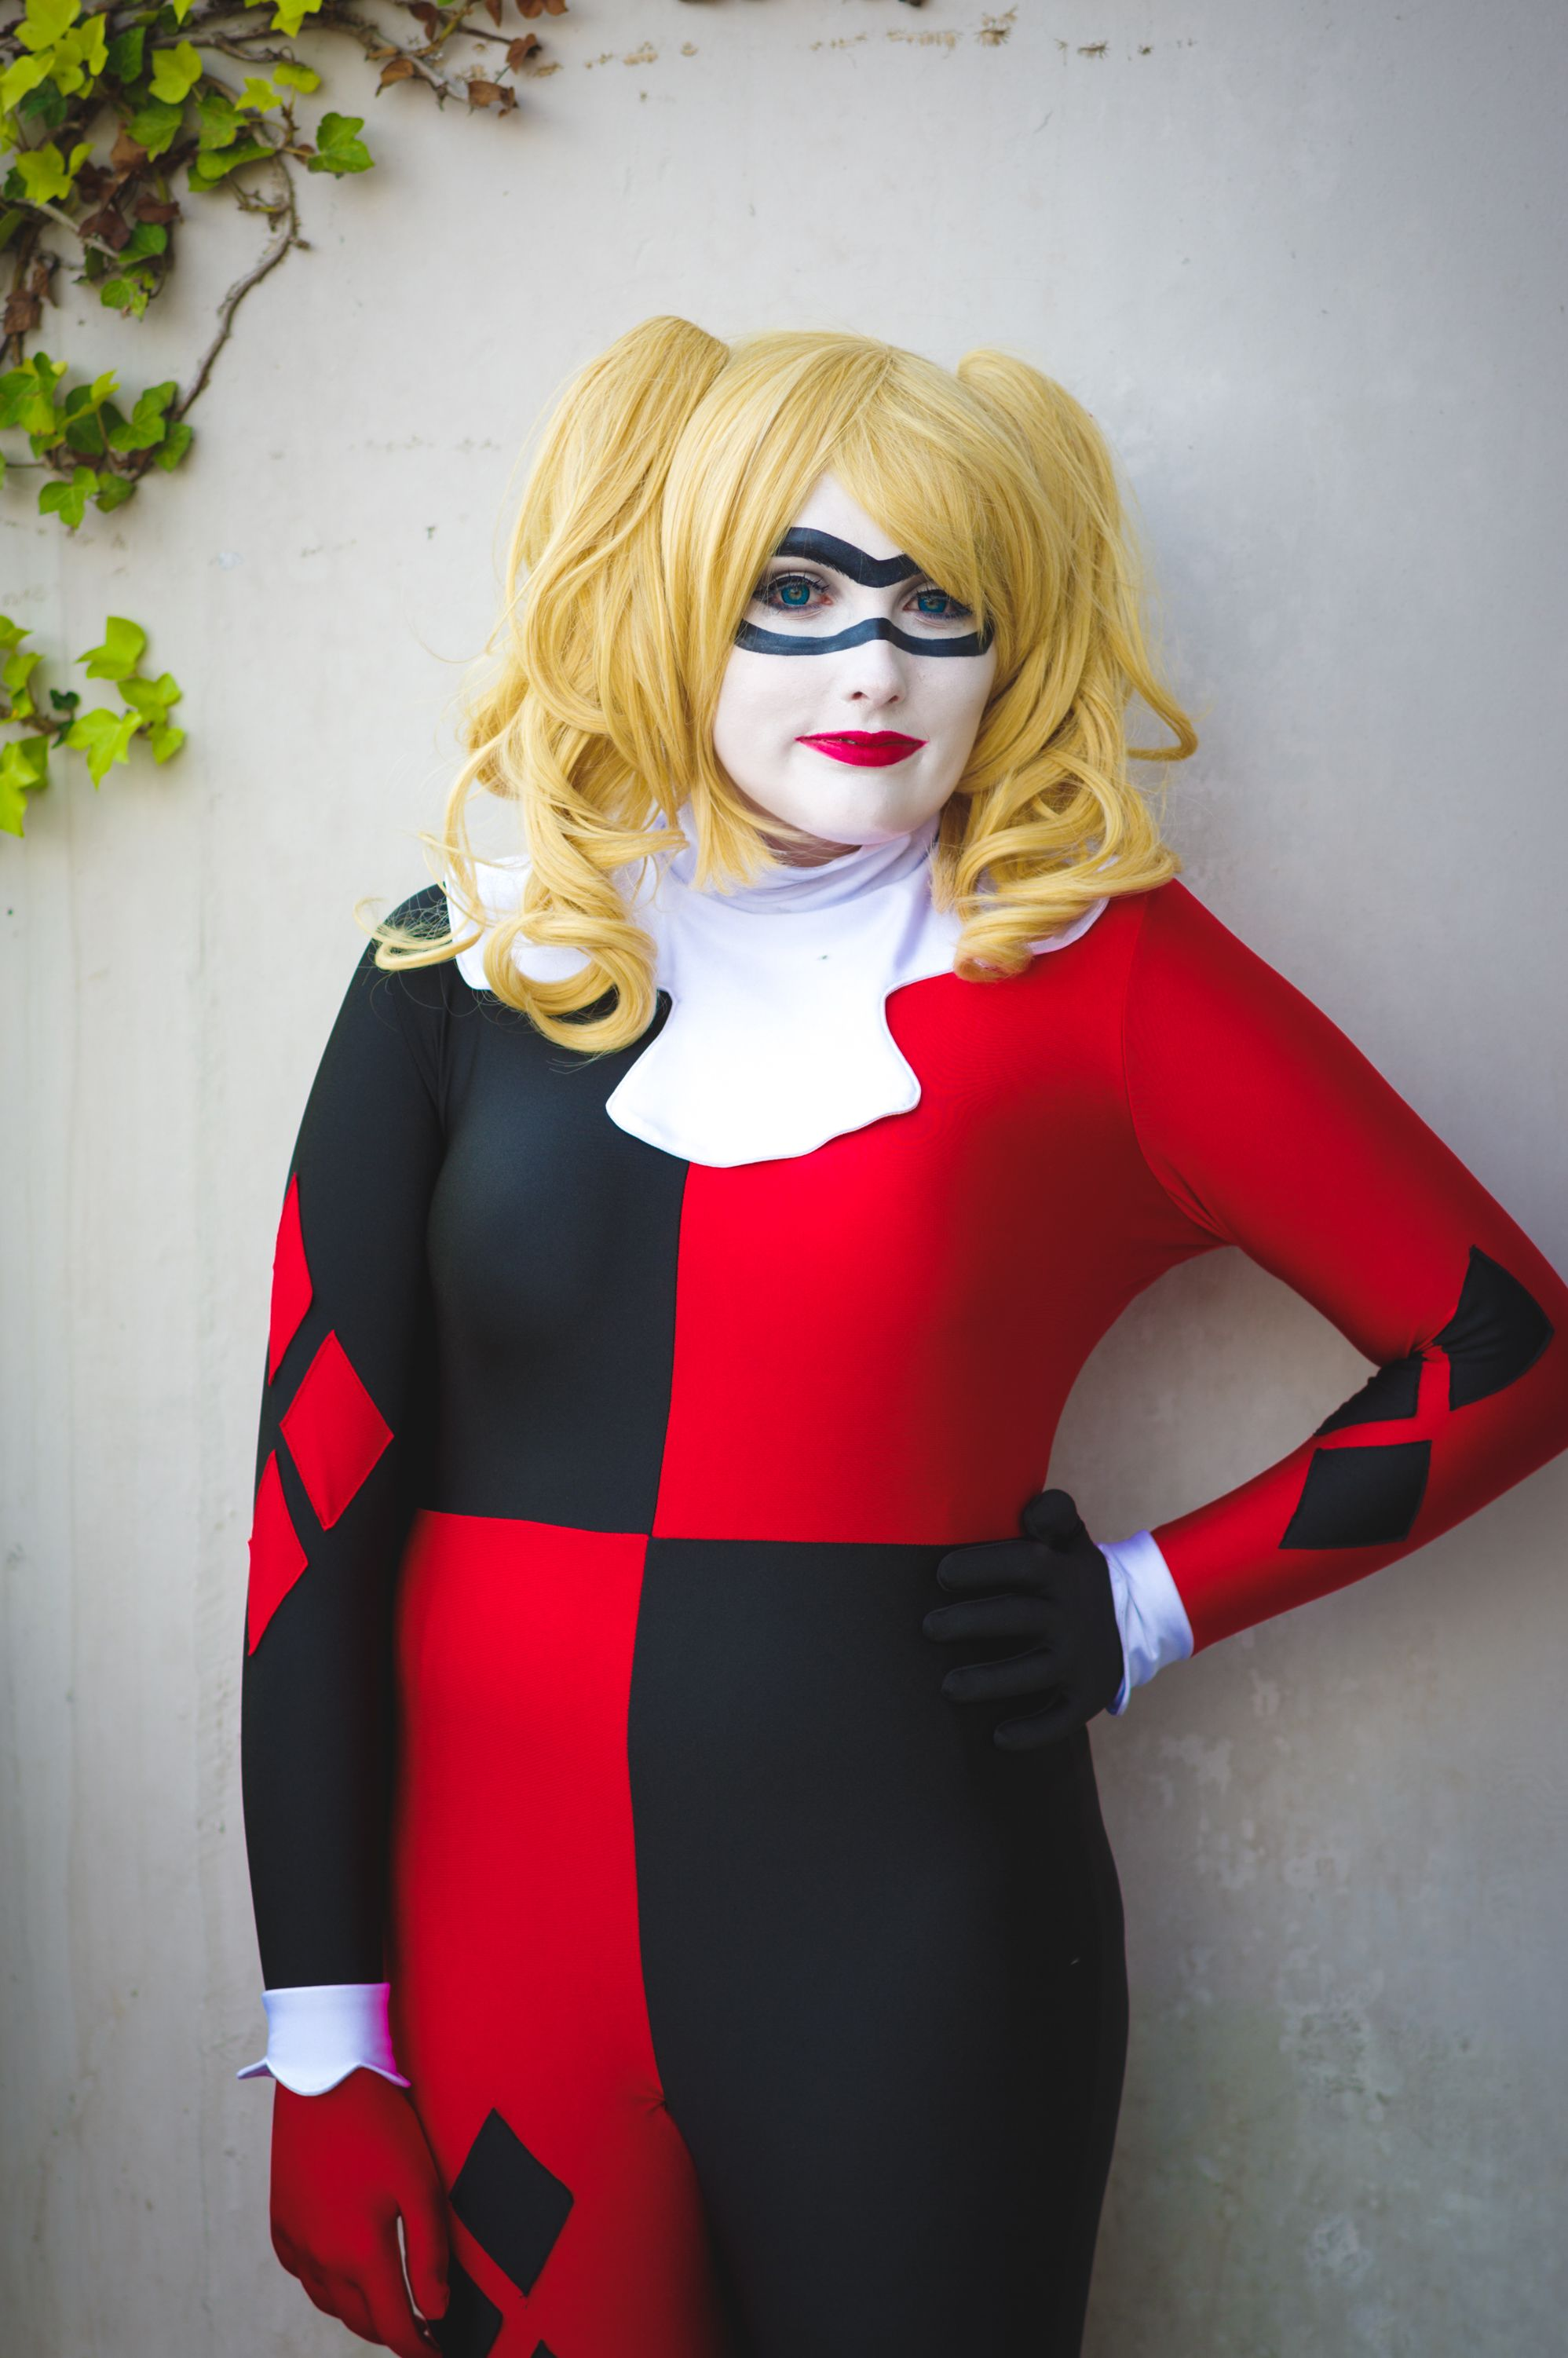 15 DIY Harley Quinn Costume Ideas for Halloween That Are Gotham-Approved